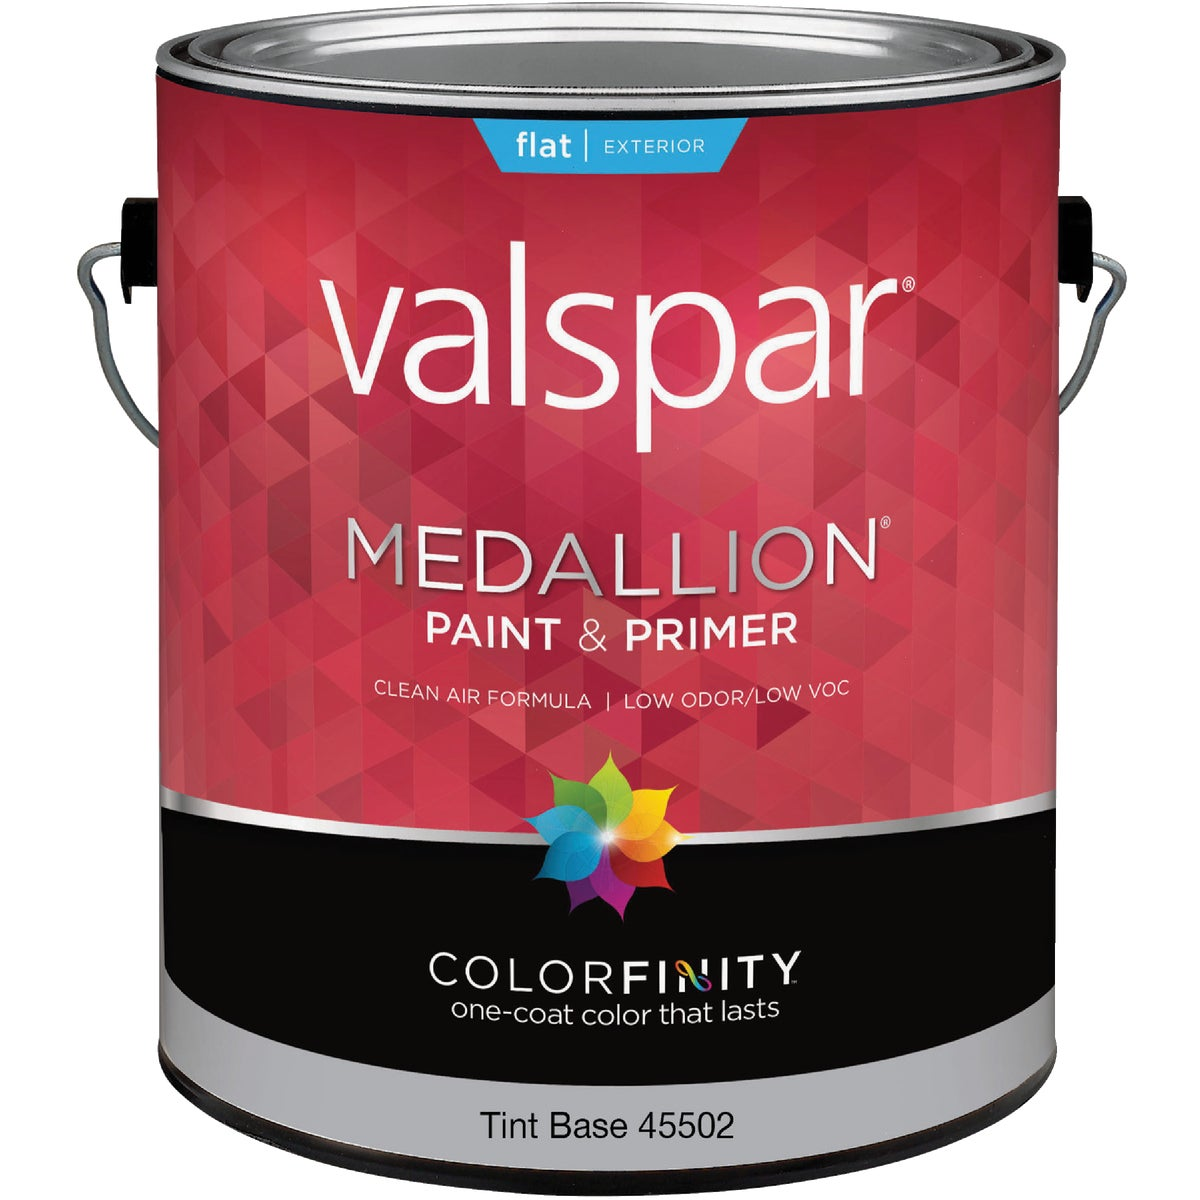 EXT FLAT TINT BS PAINT - 027.0045502.007 by Valspar Corp